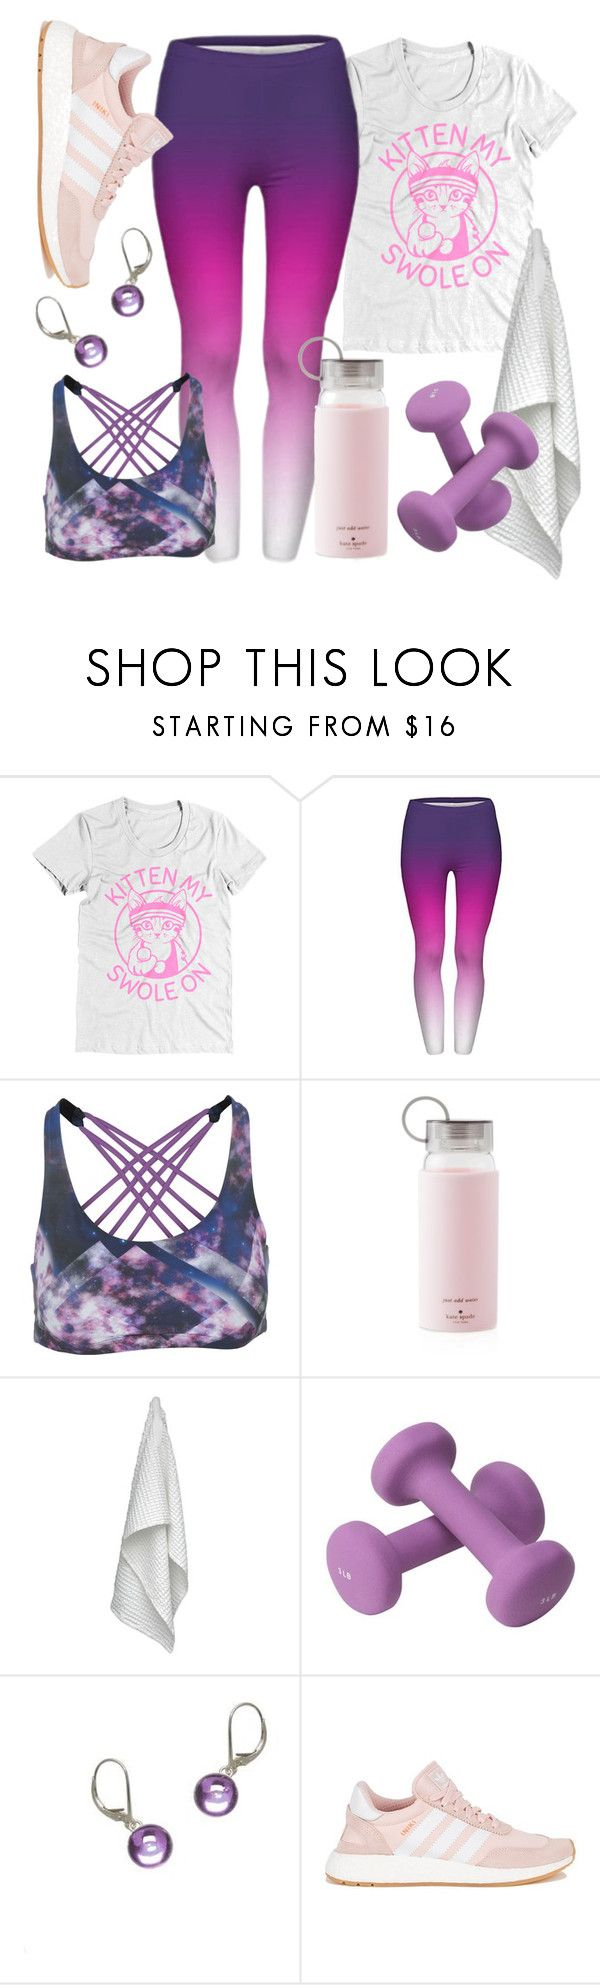 """""""Kitten My Swole On"""" by avagoldworks ❤ liked on Polyvore featuring Onzie, Kate Spade, The Organic Company, Valeo, adidas and avagoldworks"""